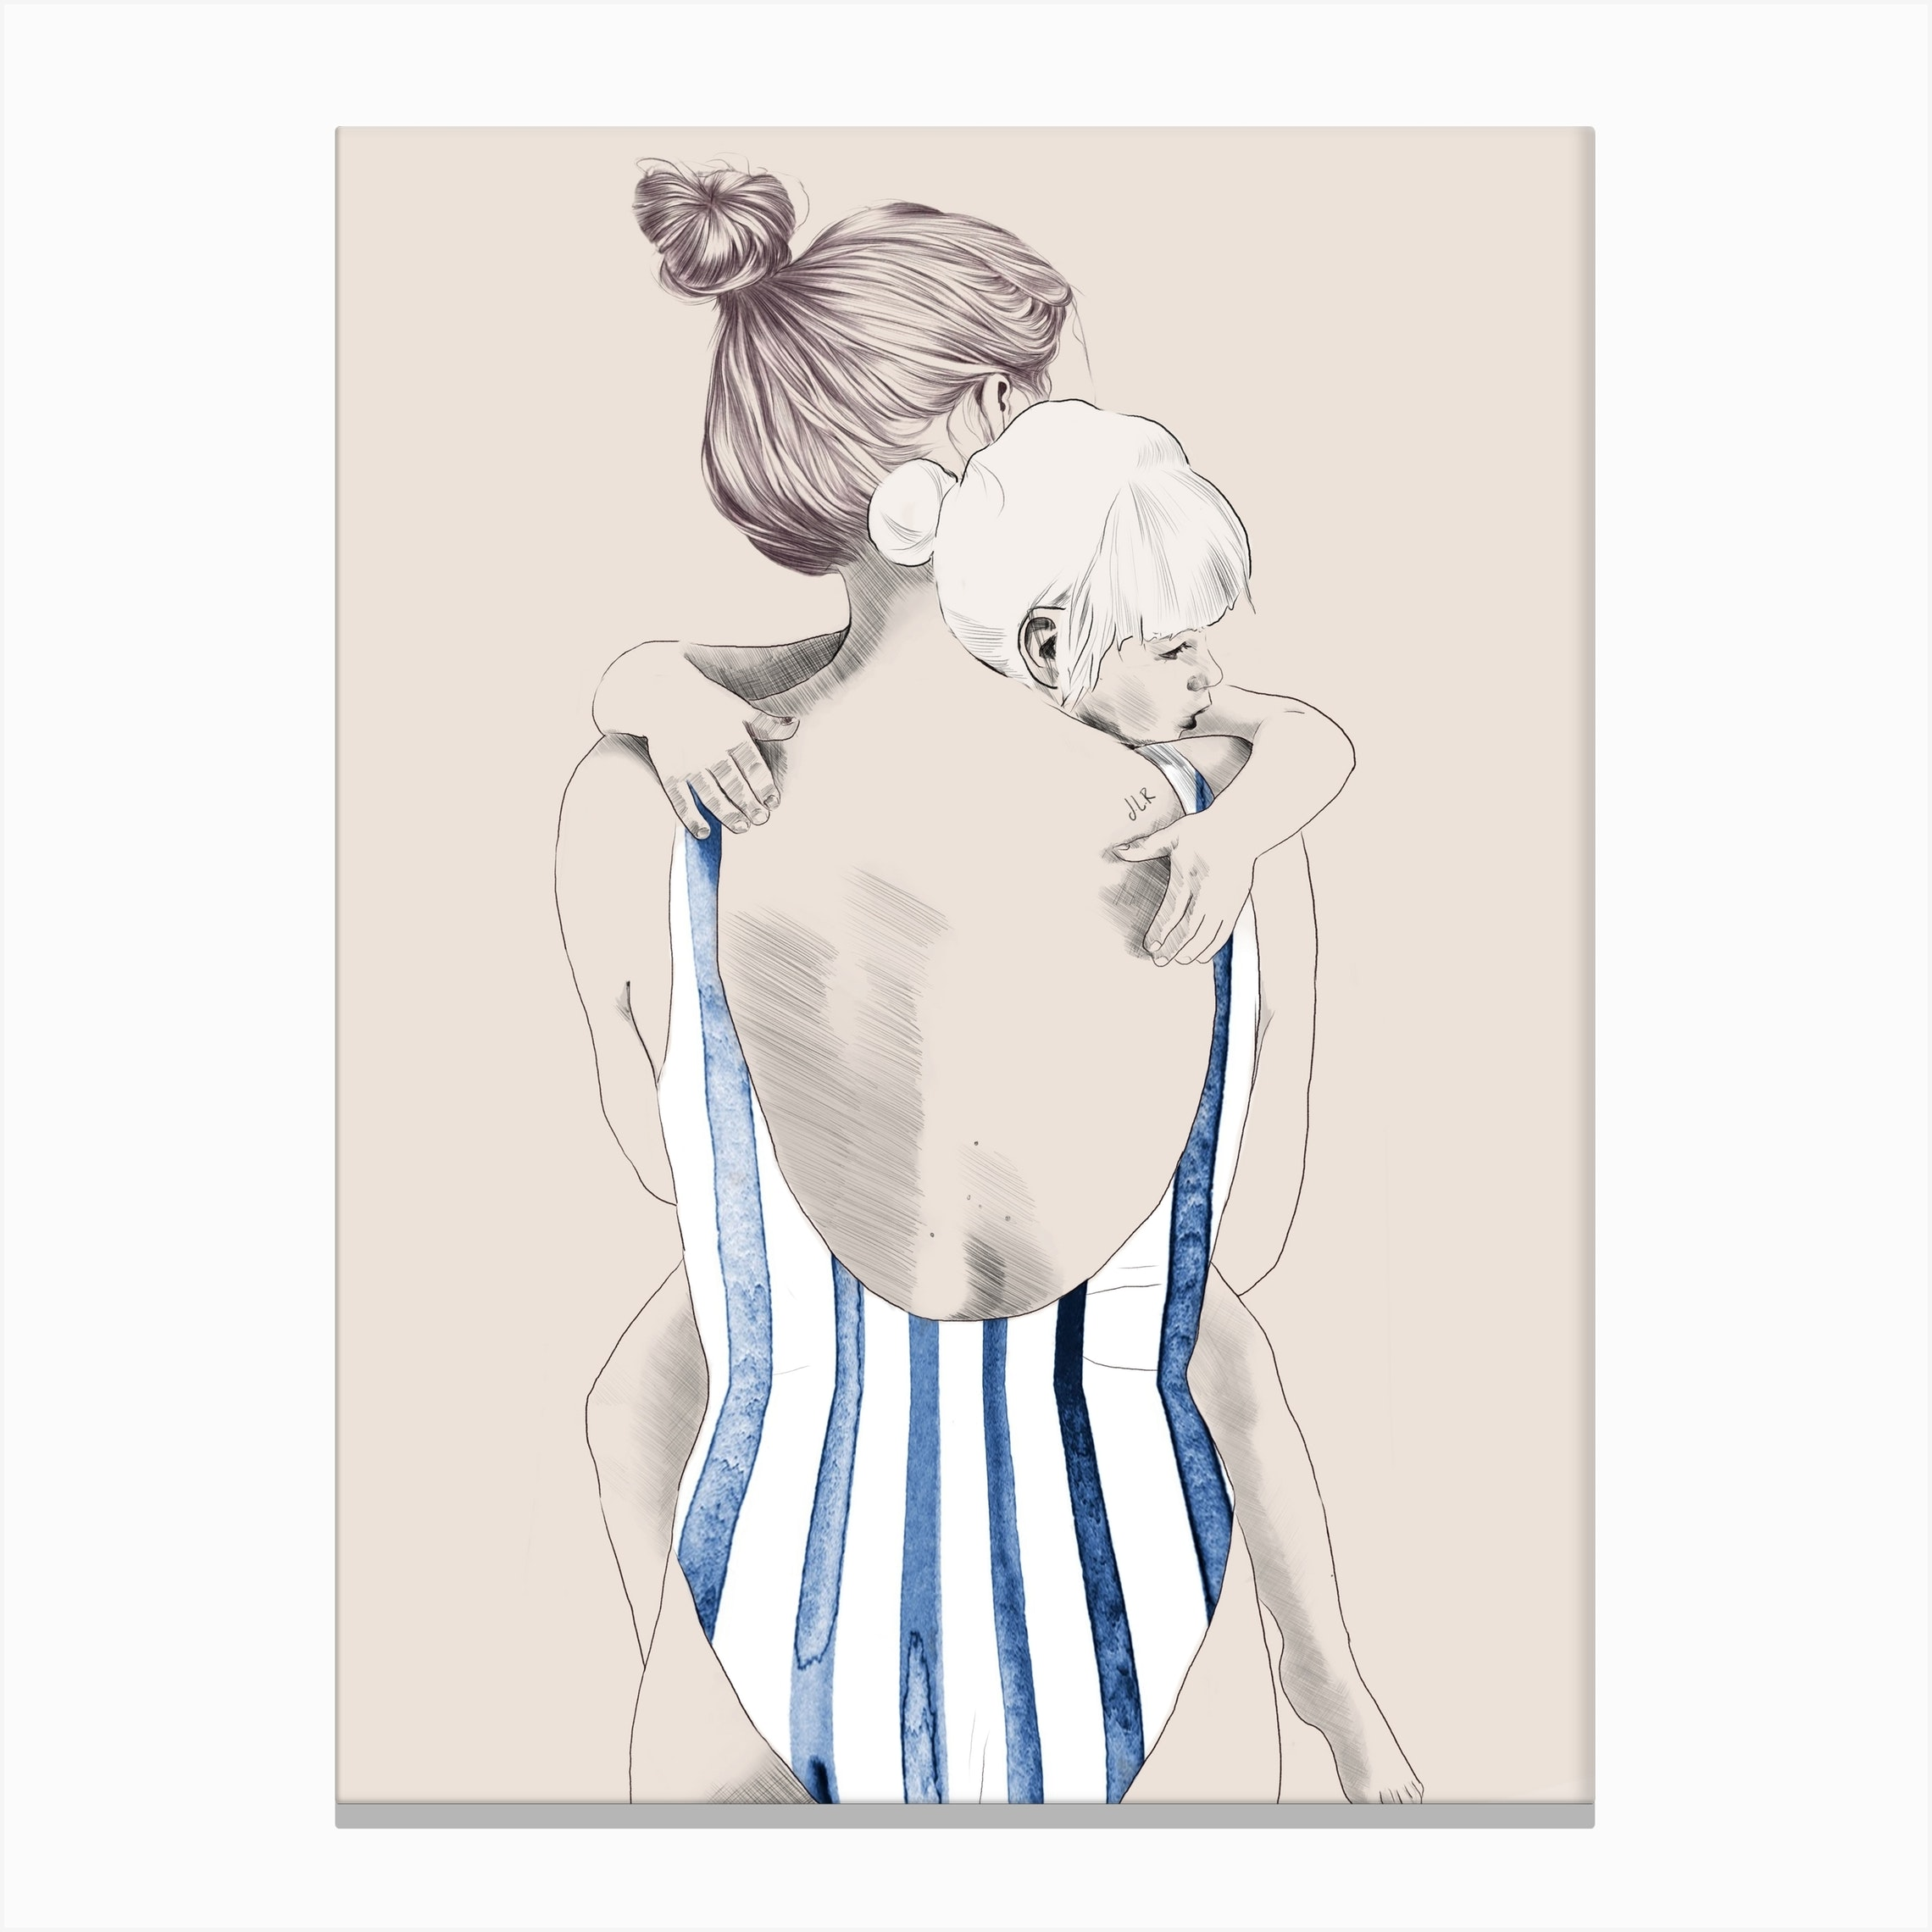 Shop Daughter Canvas Print from Iamfy on Openhaus